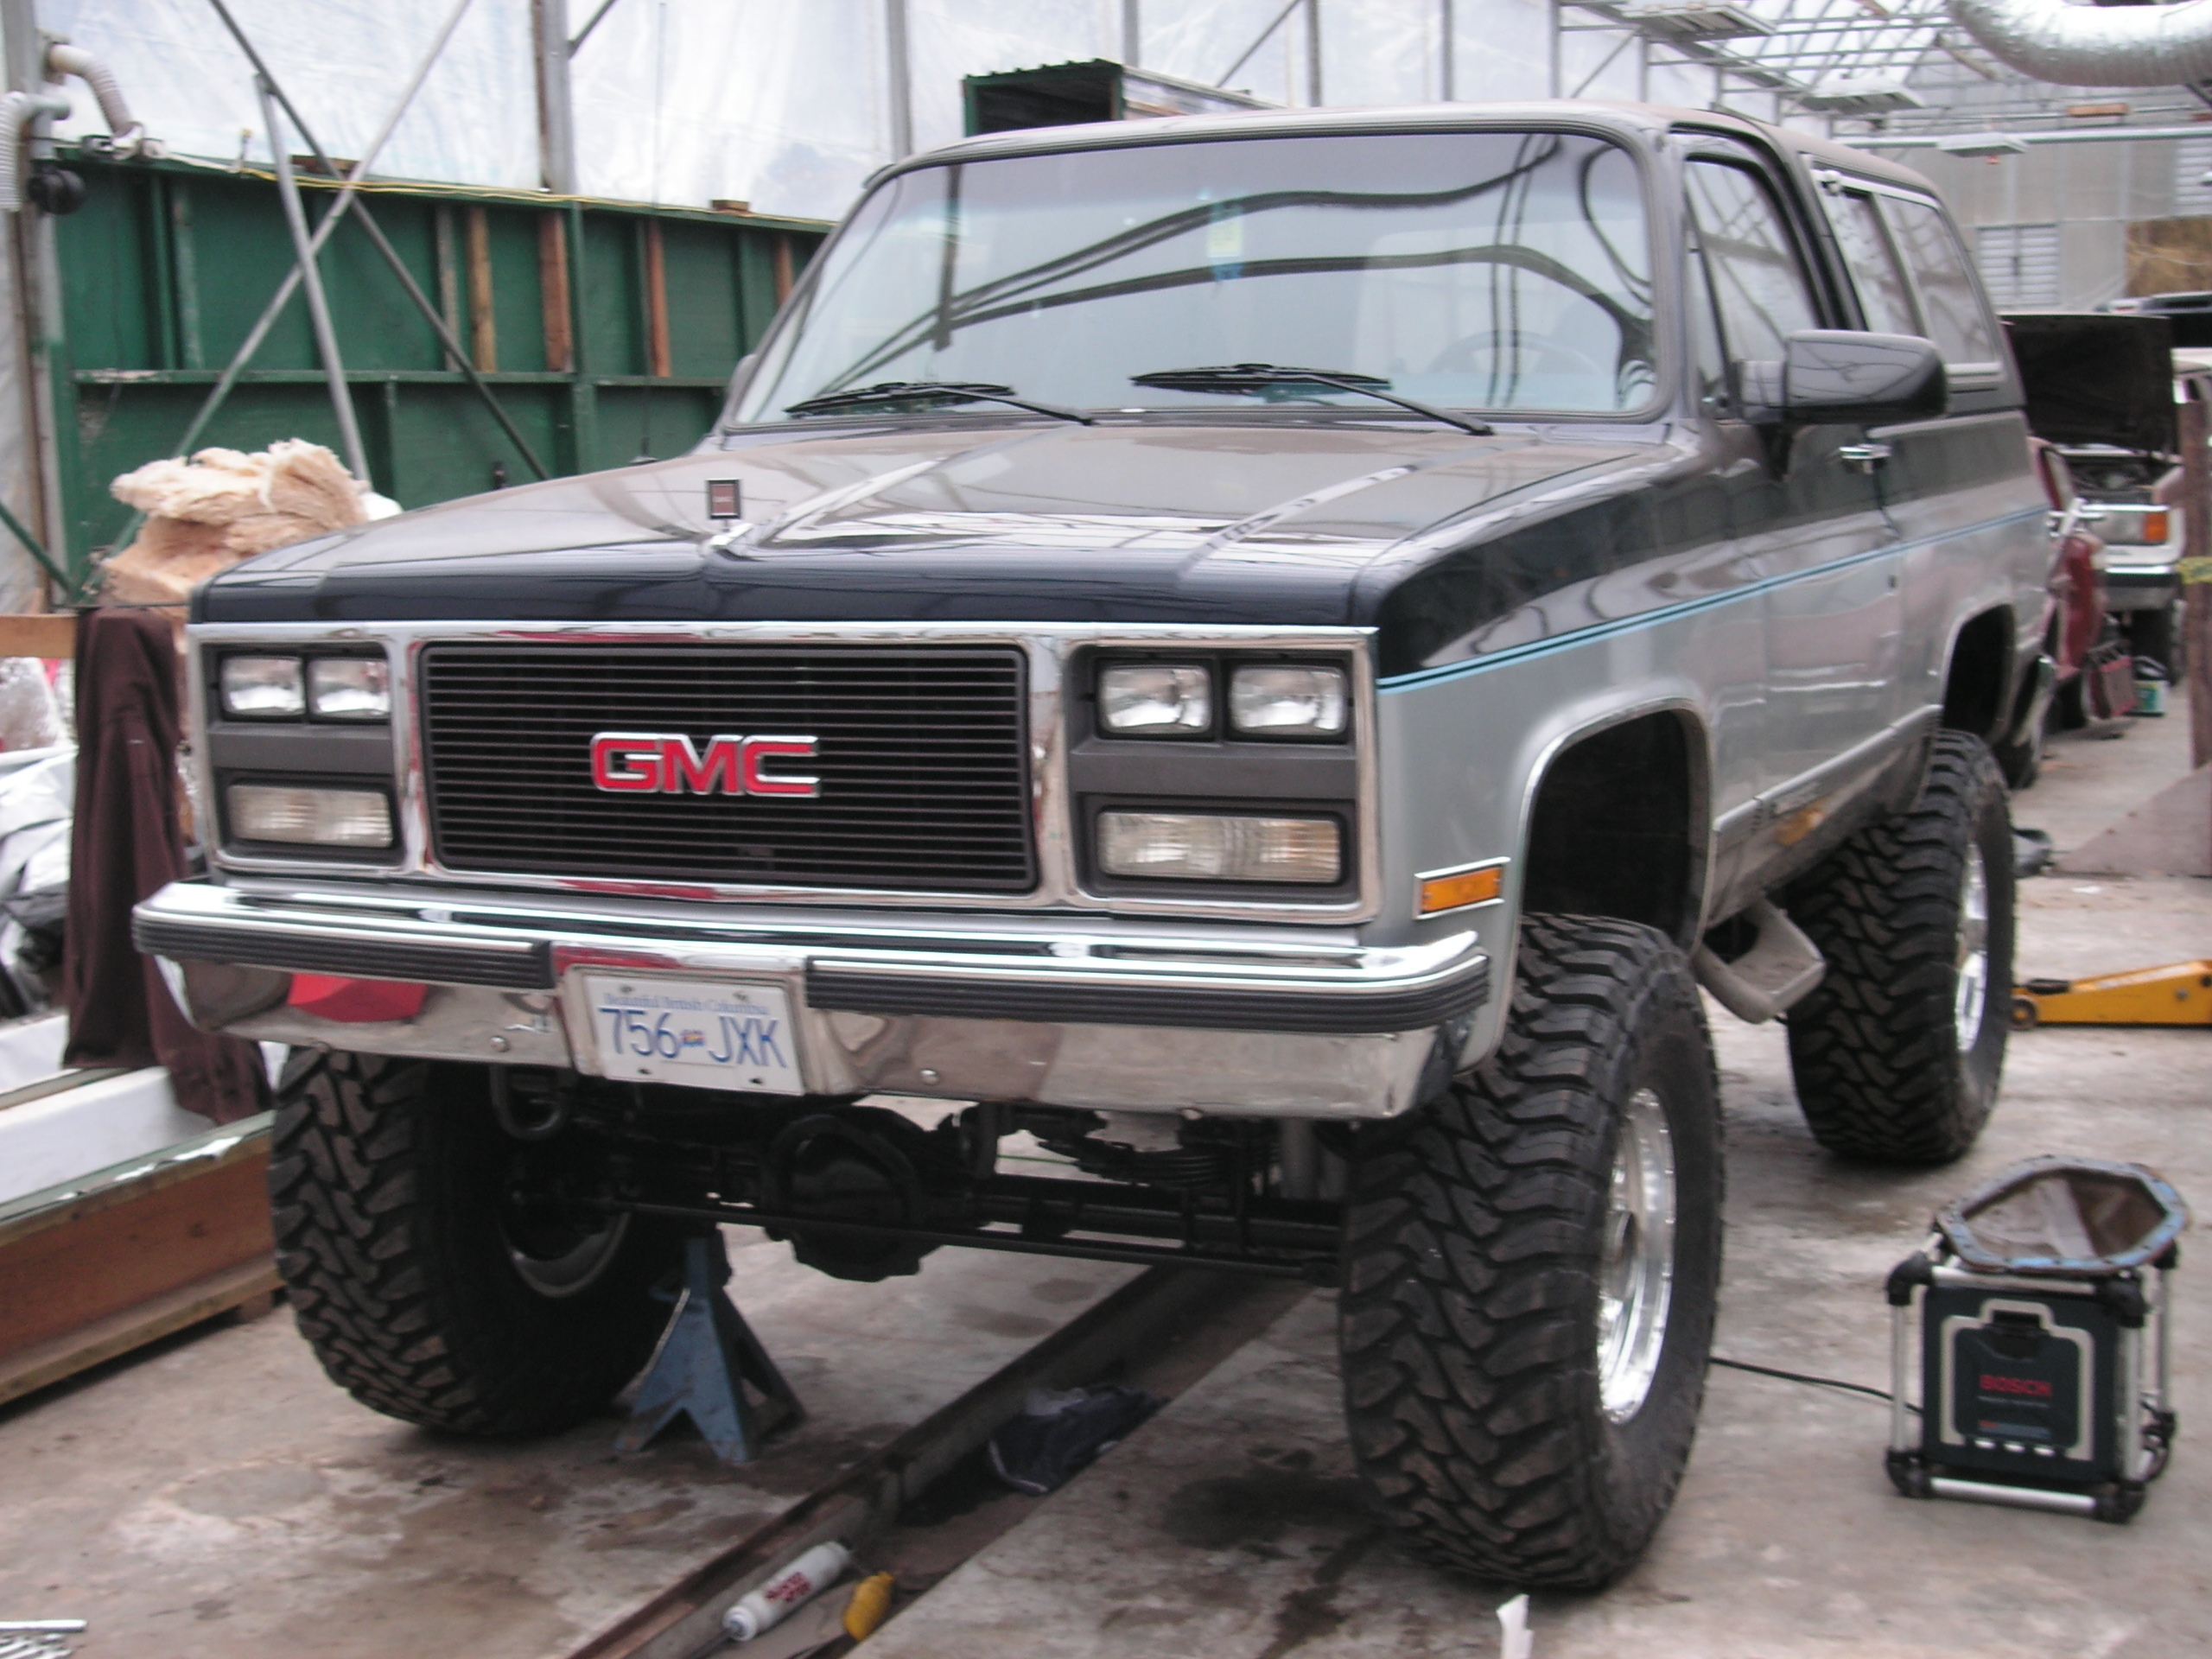 1990 Chevy K5 Blazer >> toudi 1990 GMC Jimmy Specs, Photos, Modification Info at CarDomain